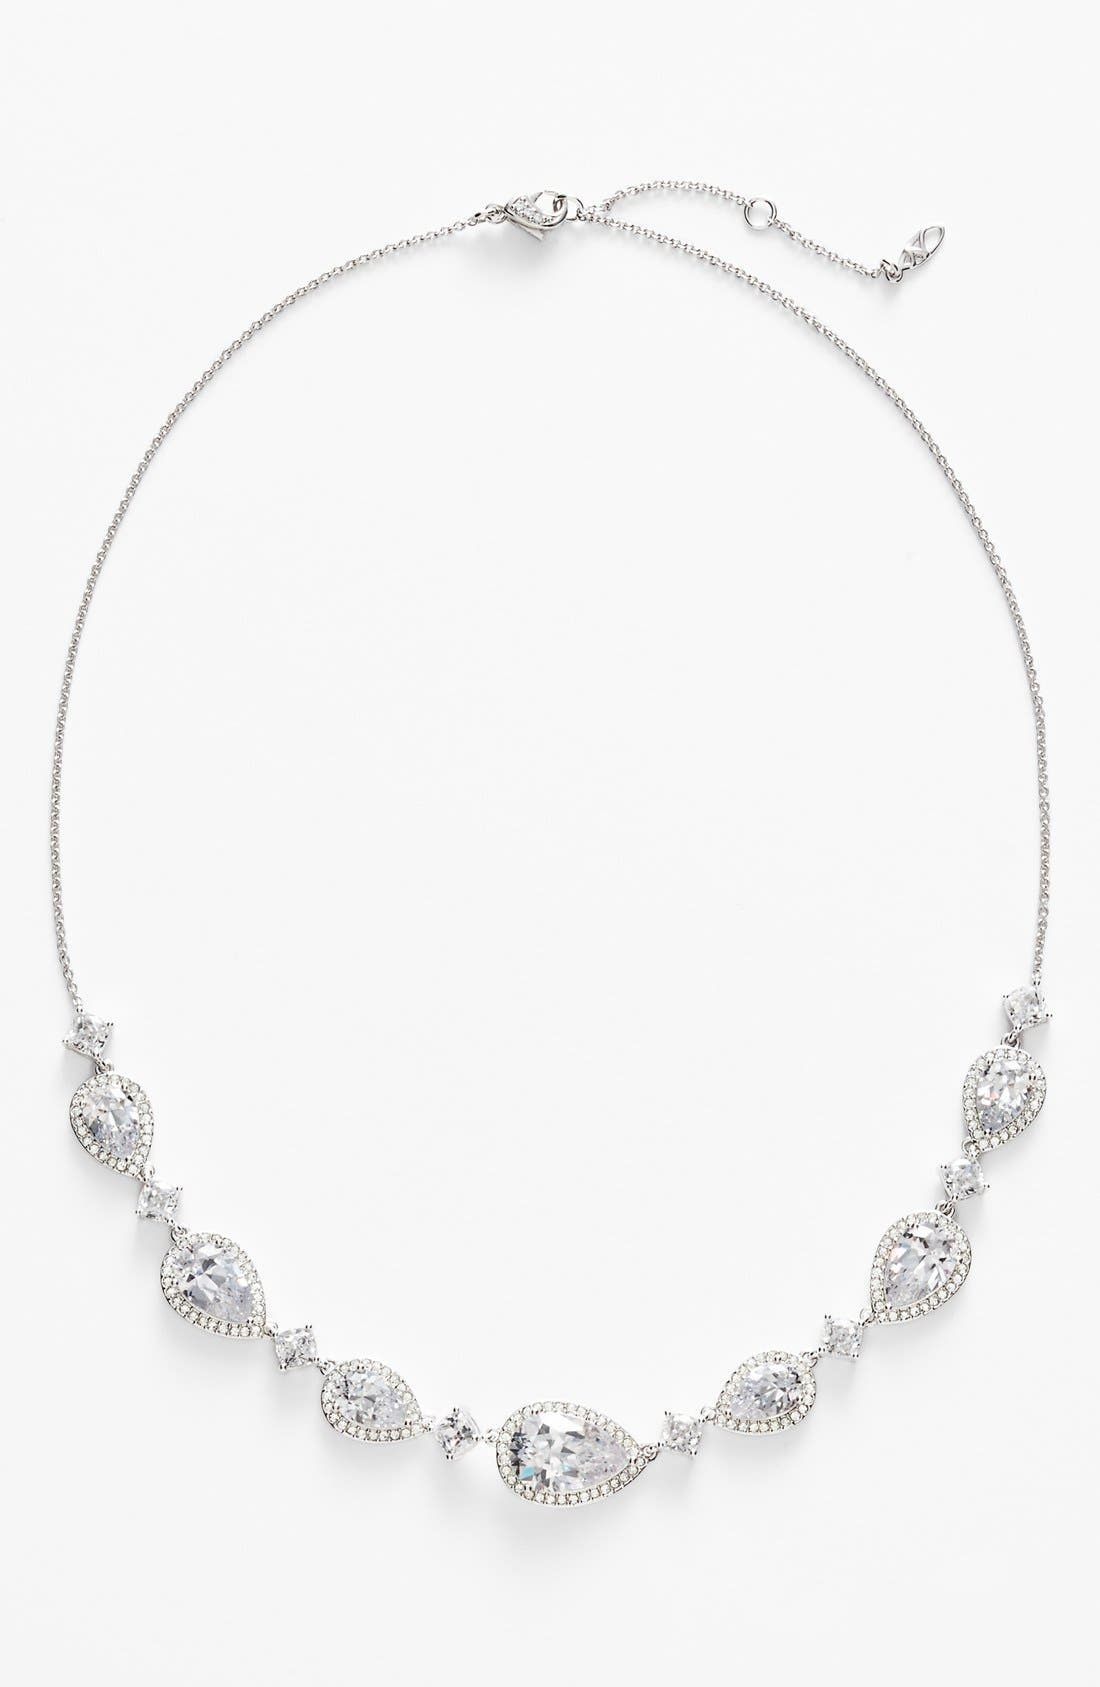 Cubic Zirconia Frontal Necklace,                             Main thumbnail 1, color,                             Silver